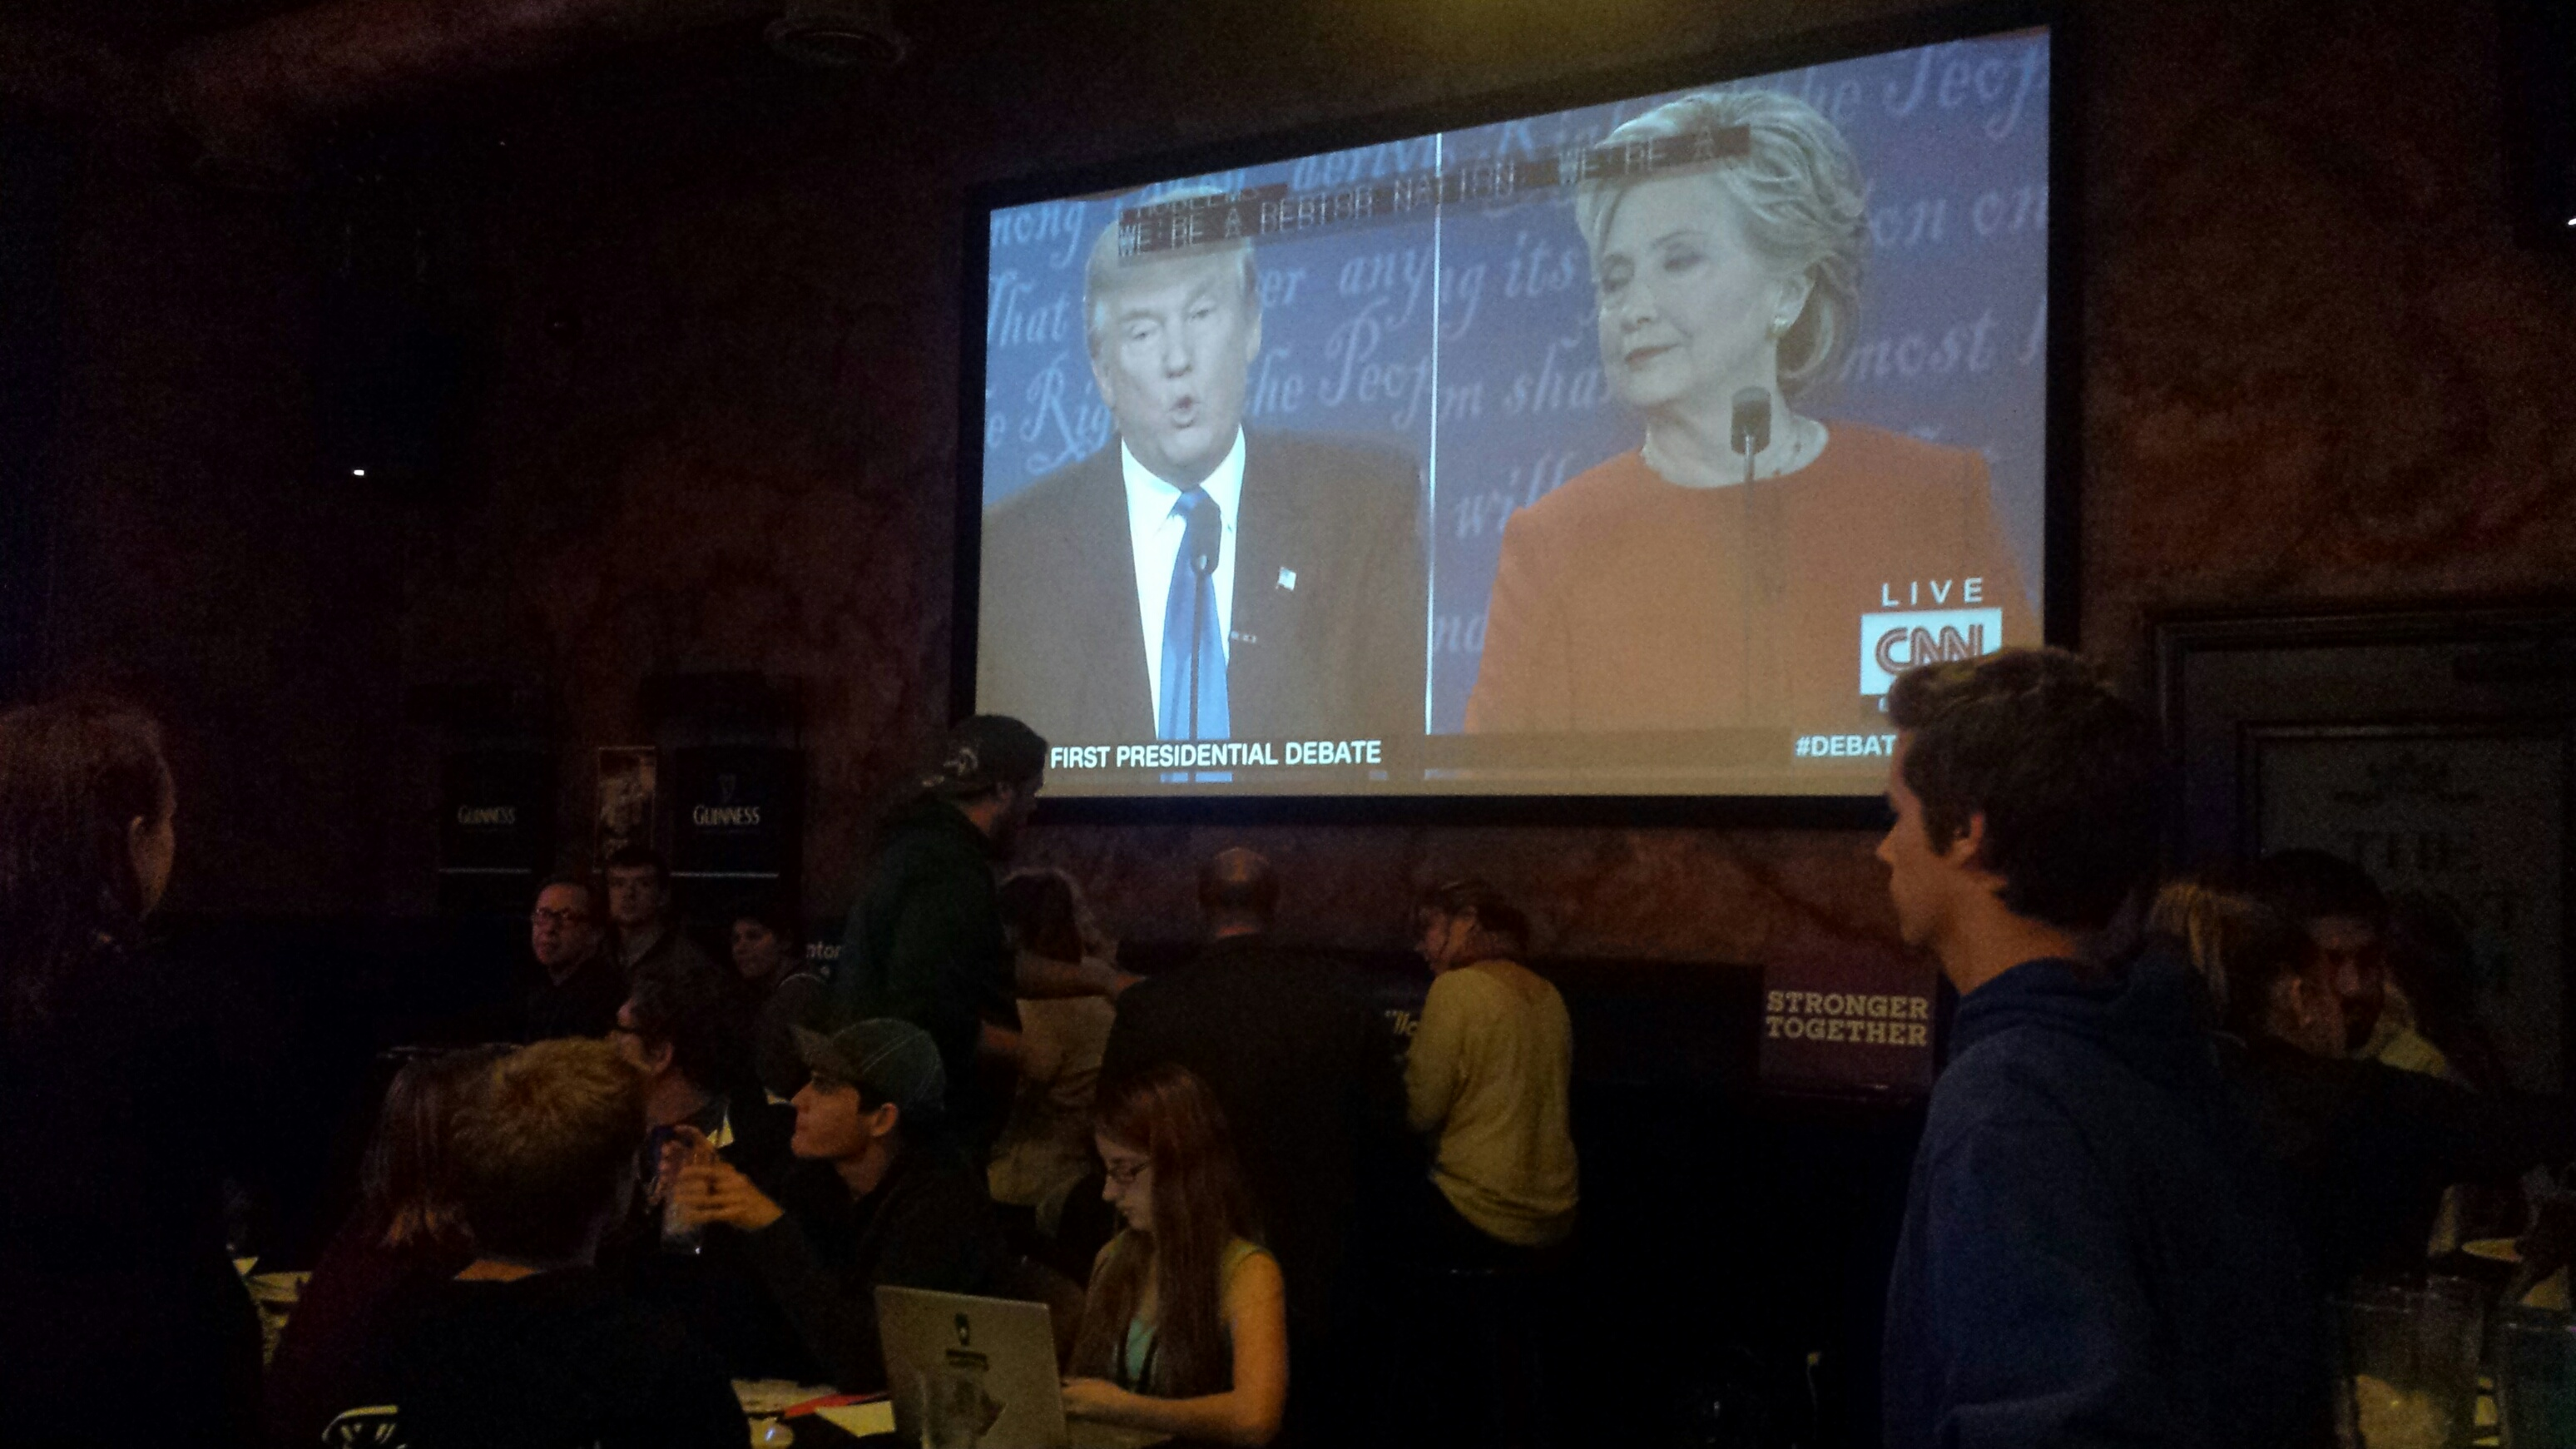 Locals React to Presidential Debate